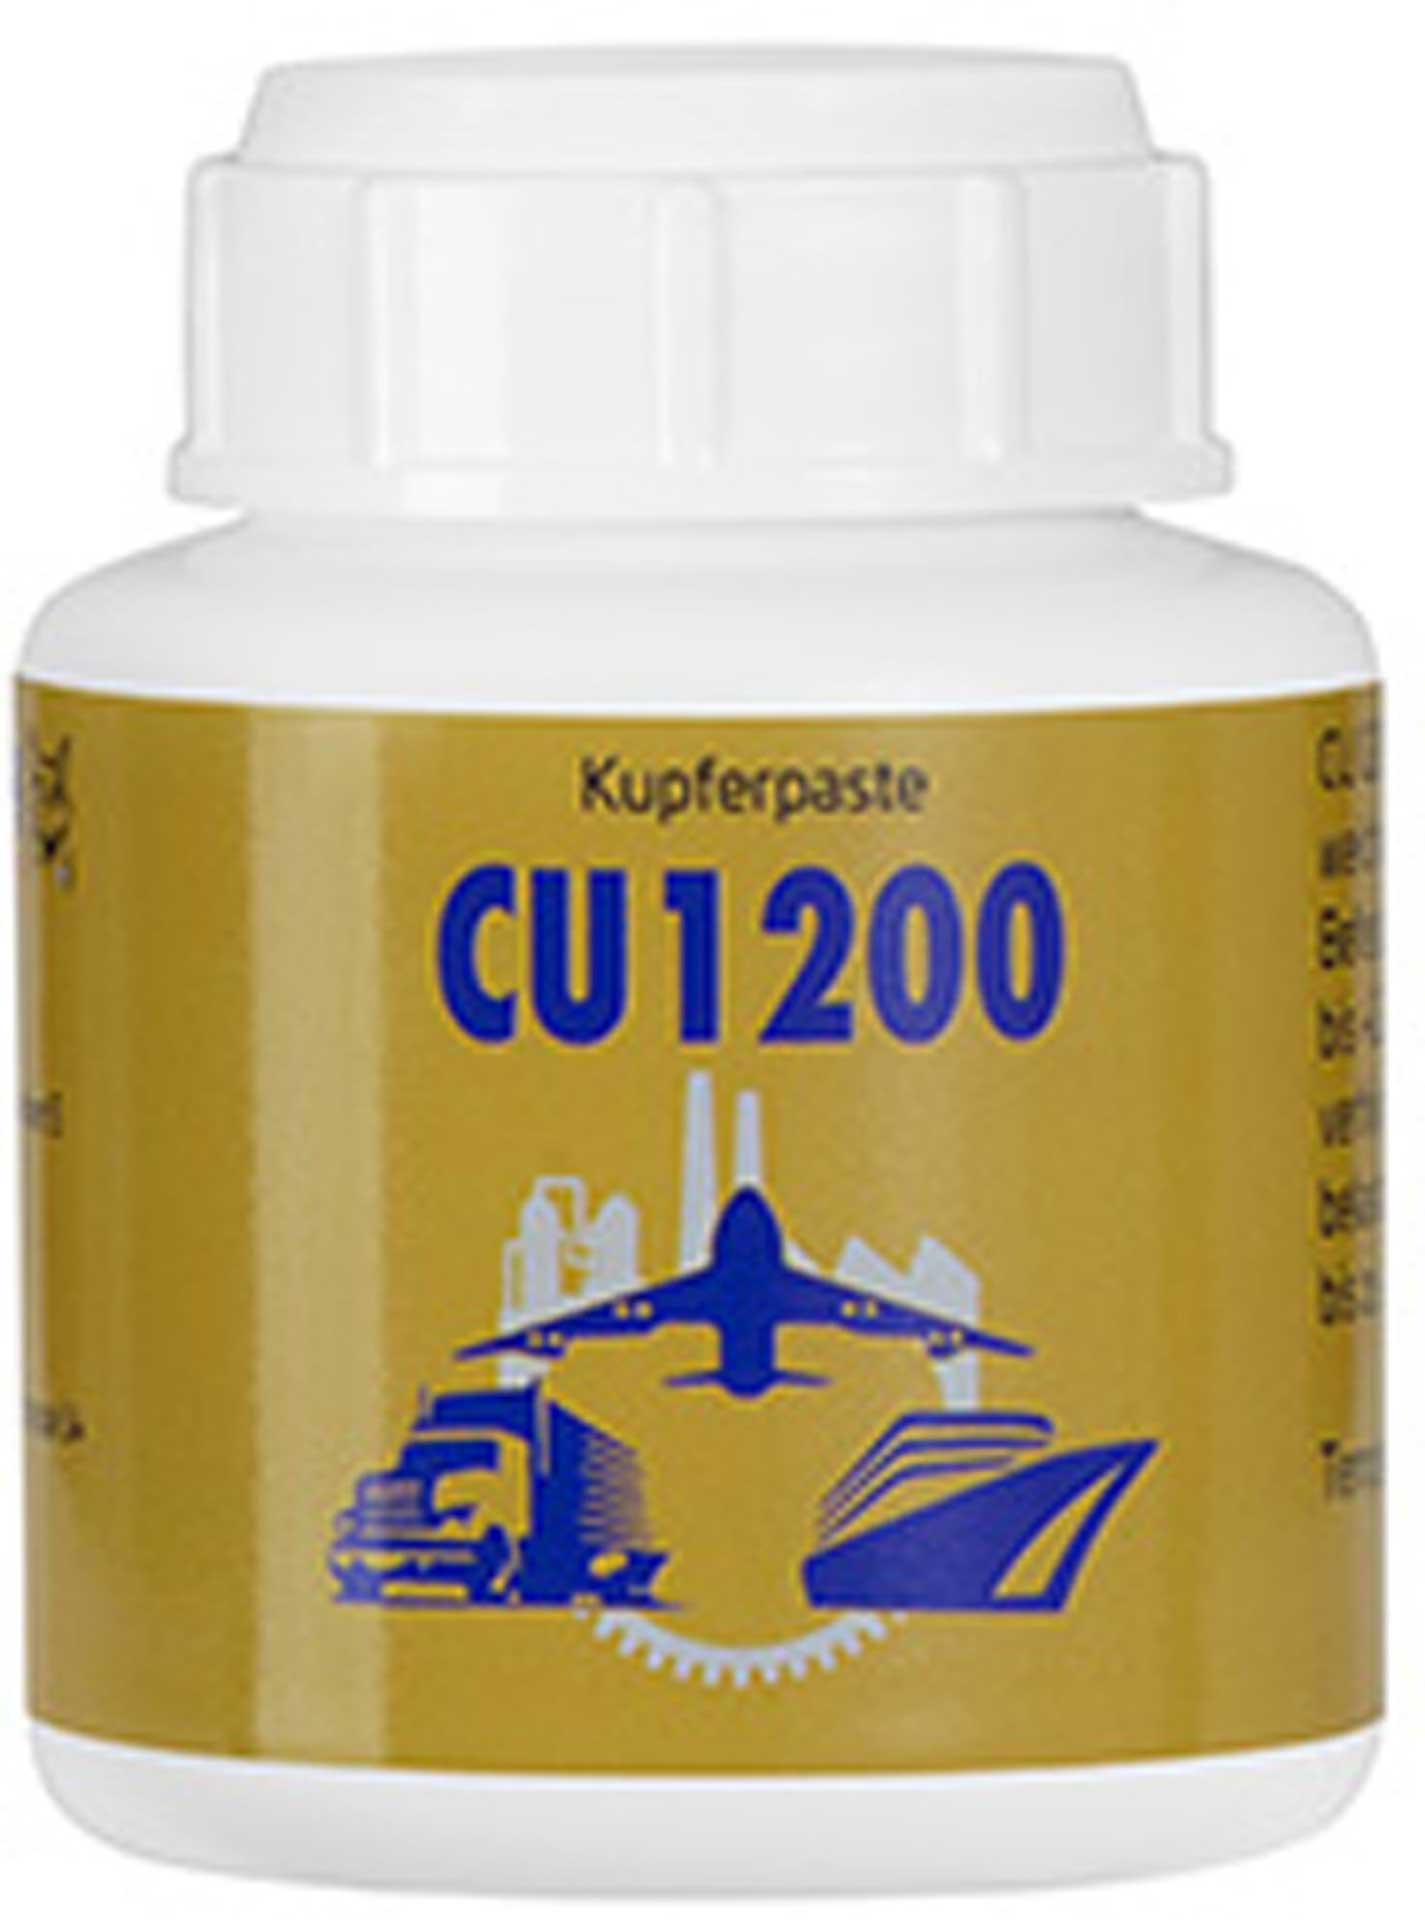 EUROTECH CU1200 LUBRICANT 140G BRUSH BOX TEMPERATURE RANGE FROM -40°C TO +1200°C (GLOCK)